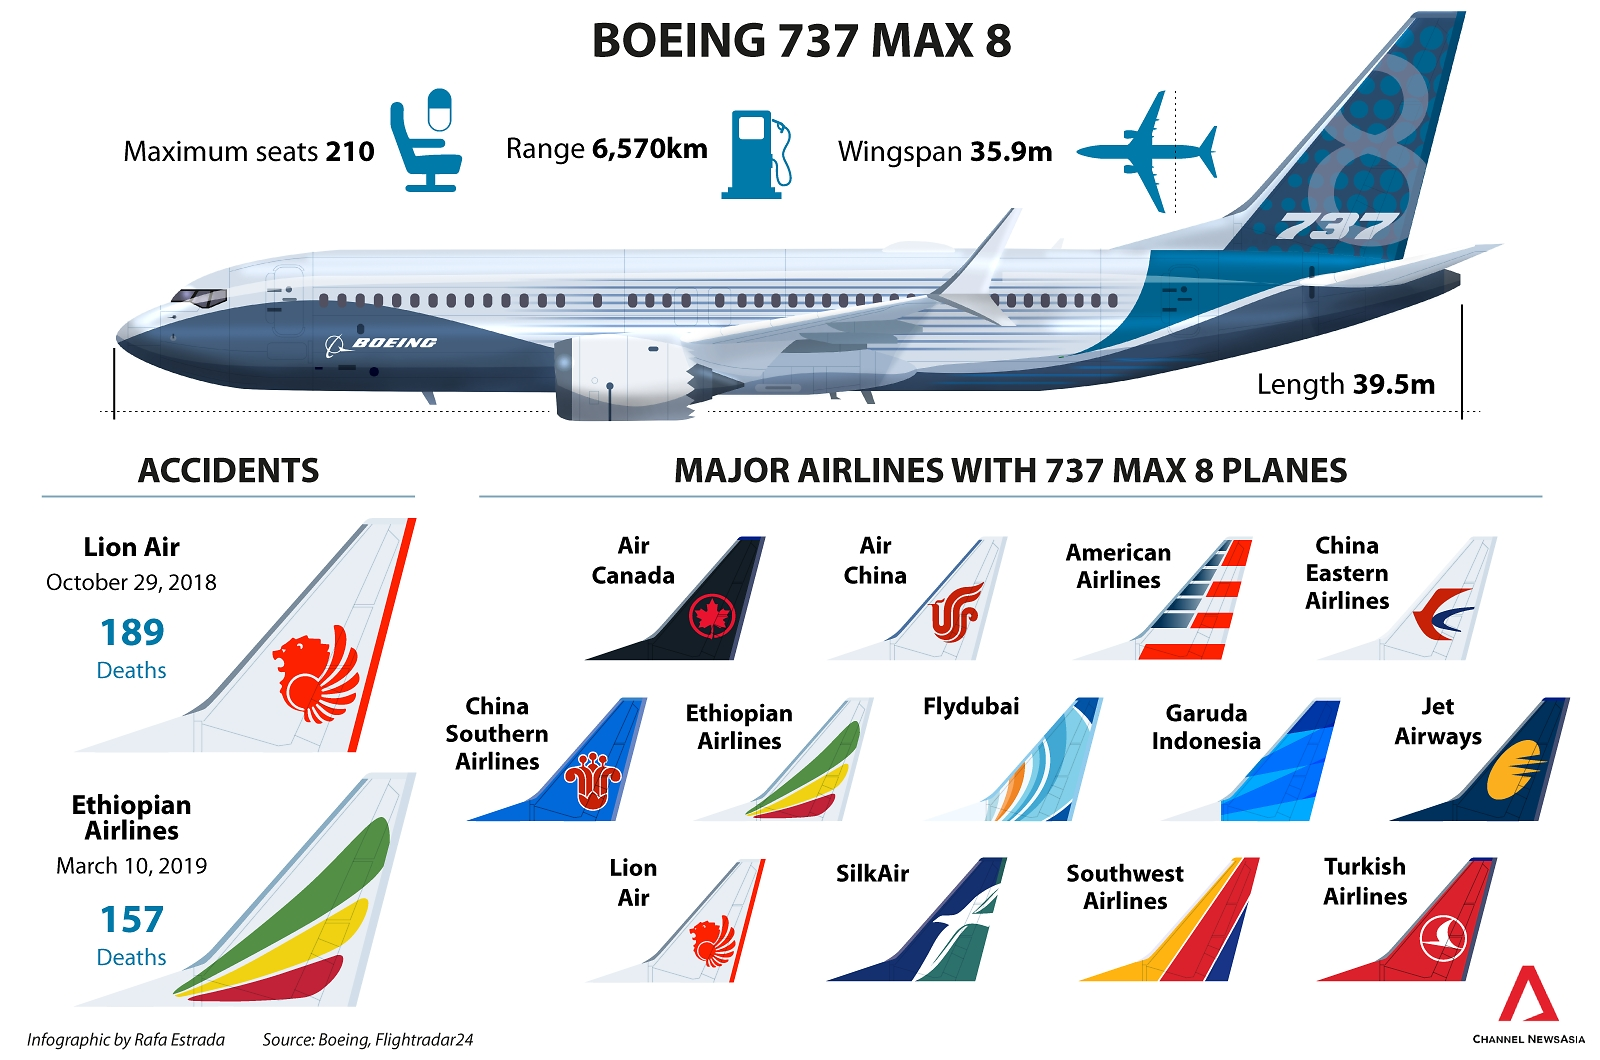 us says no basis to ground boeing 737 max jets after crash